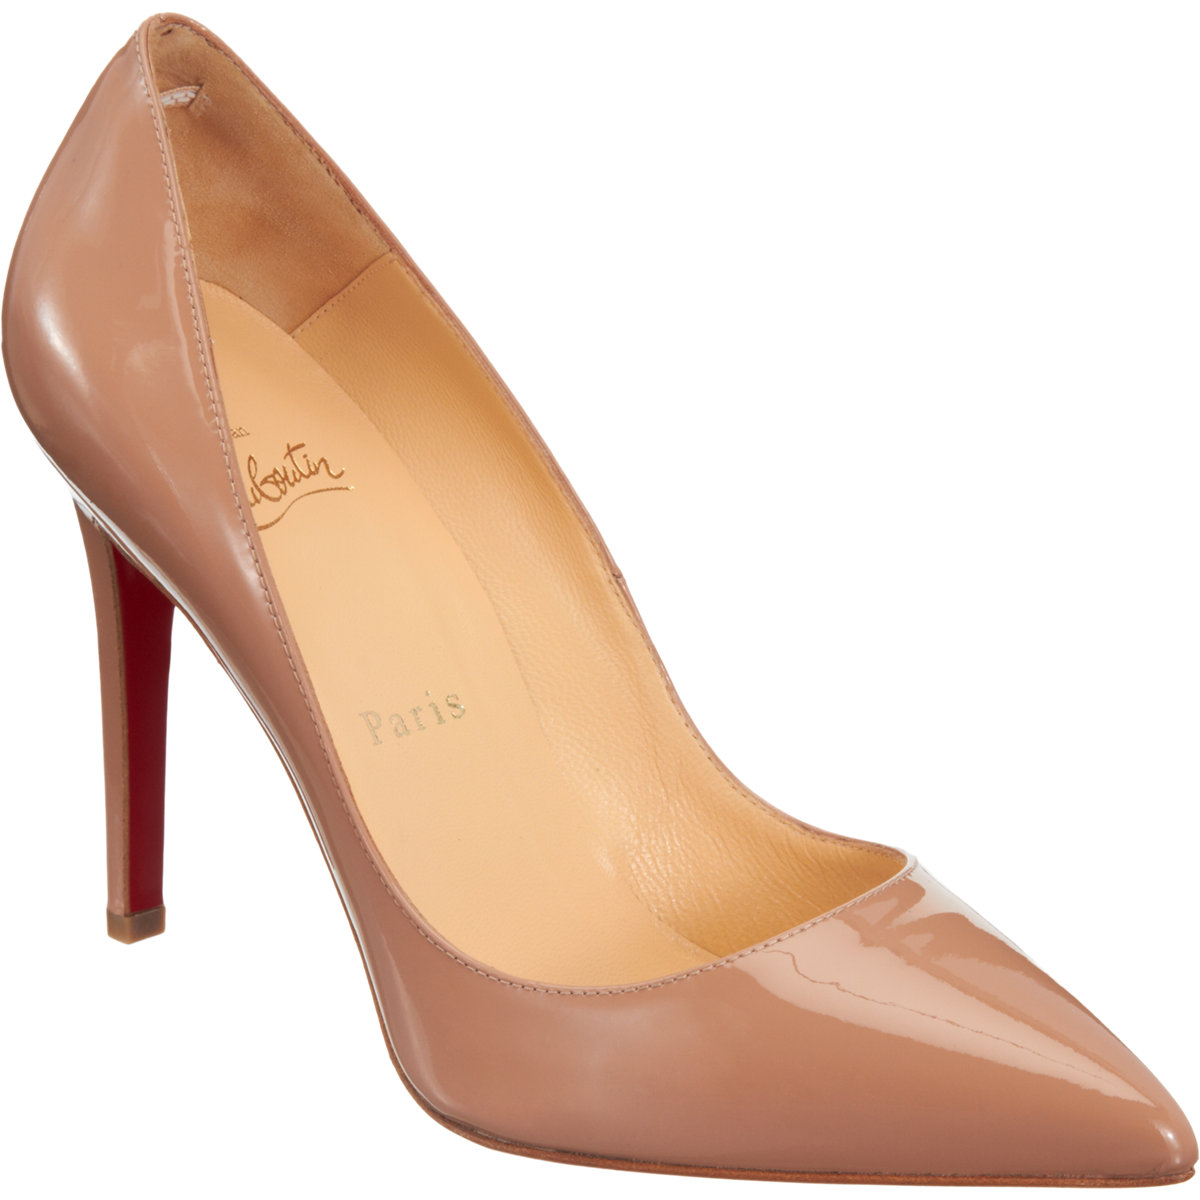 Christian Louboutin Pigalle at Barneys.com